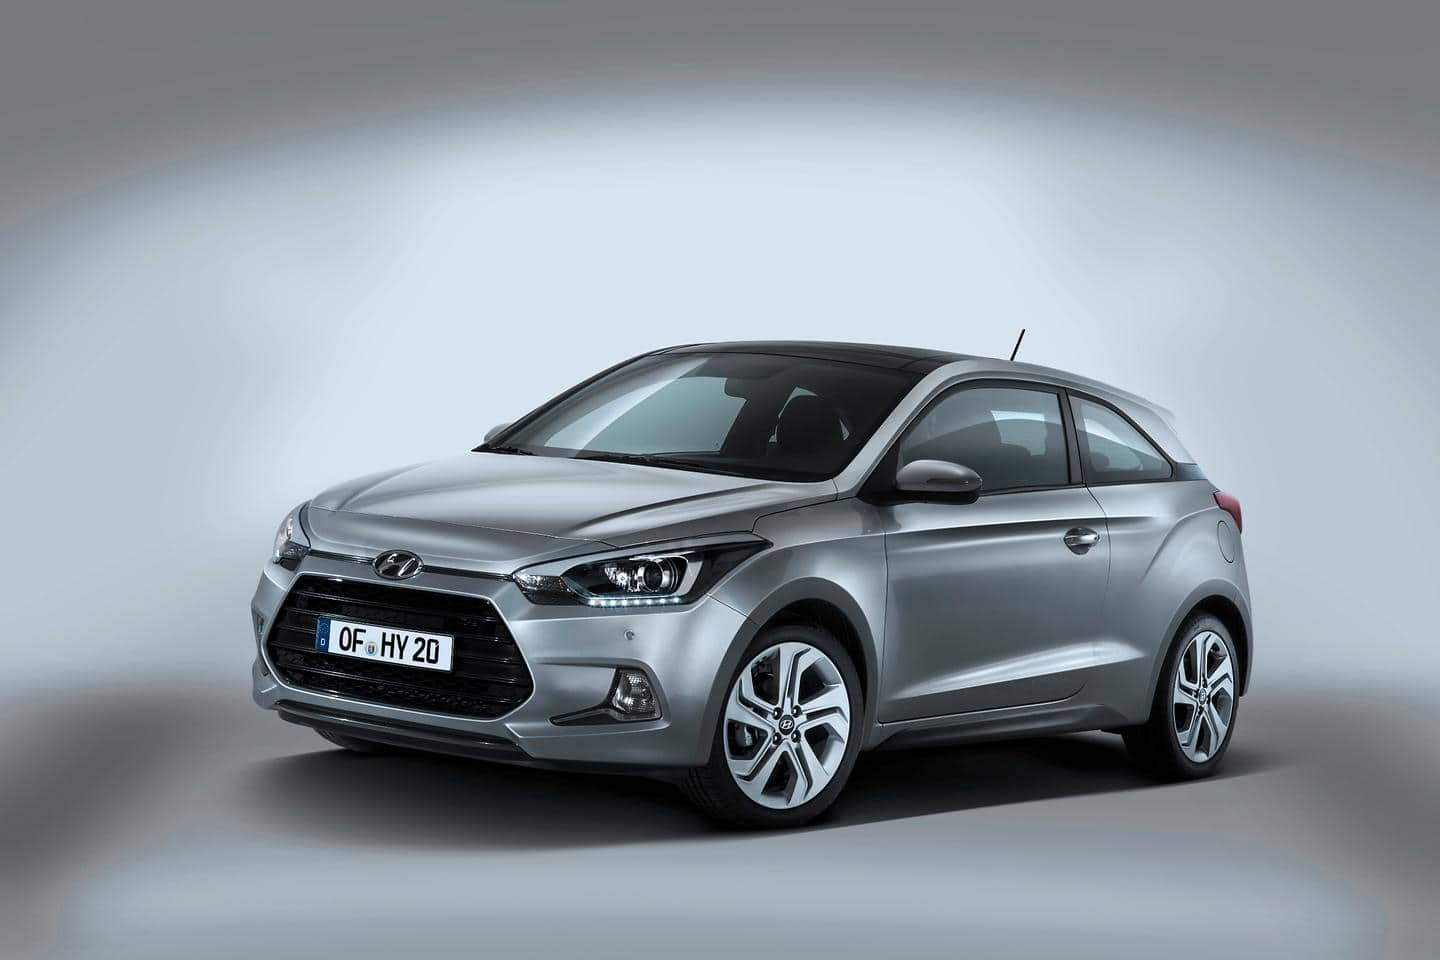 New Generation i20 family and All-new Sonata drive Hyundai Motor to three Red Dot Design Awards